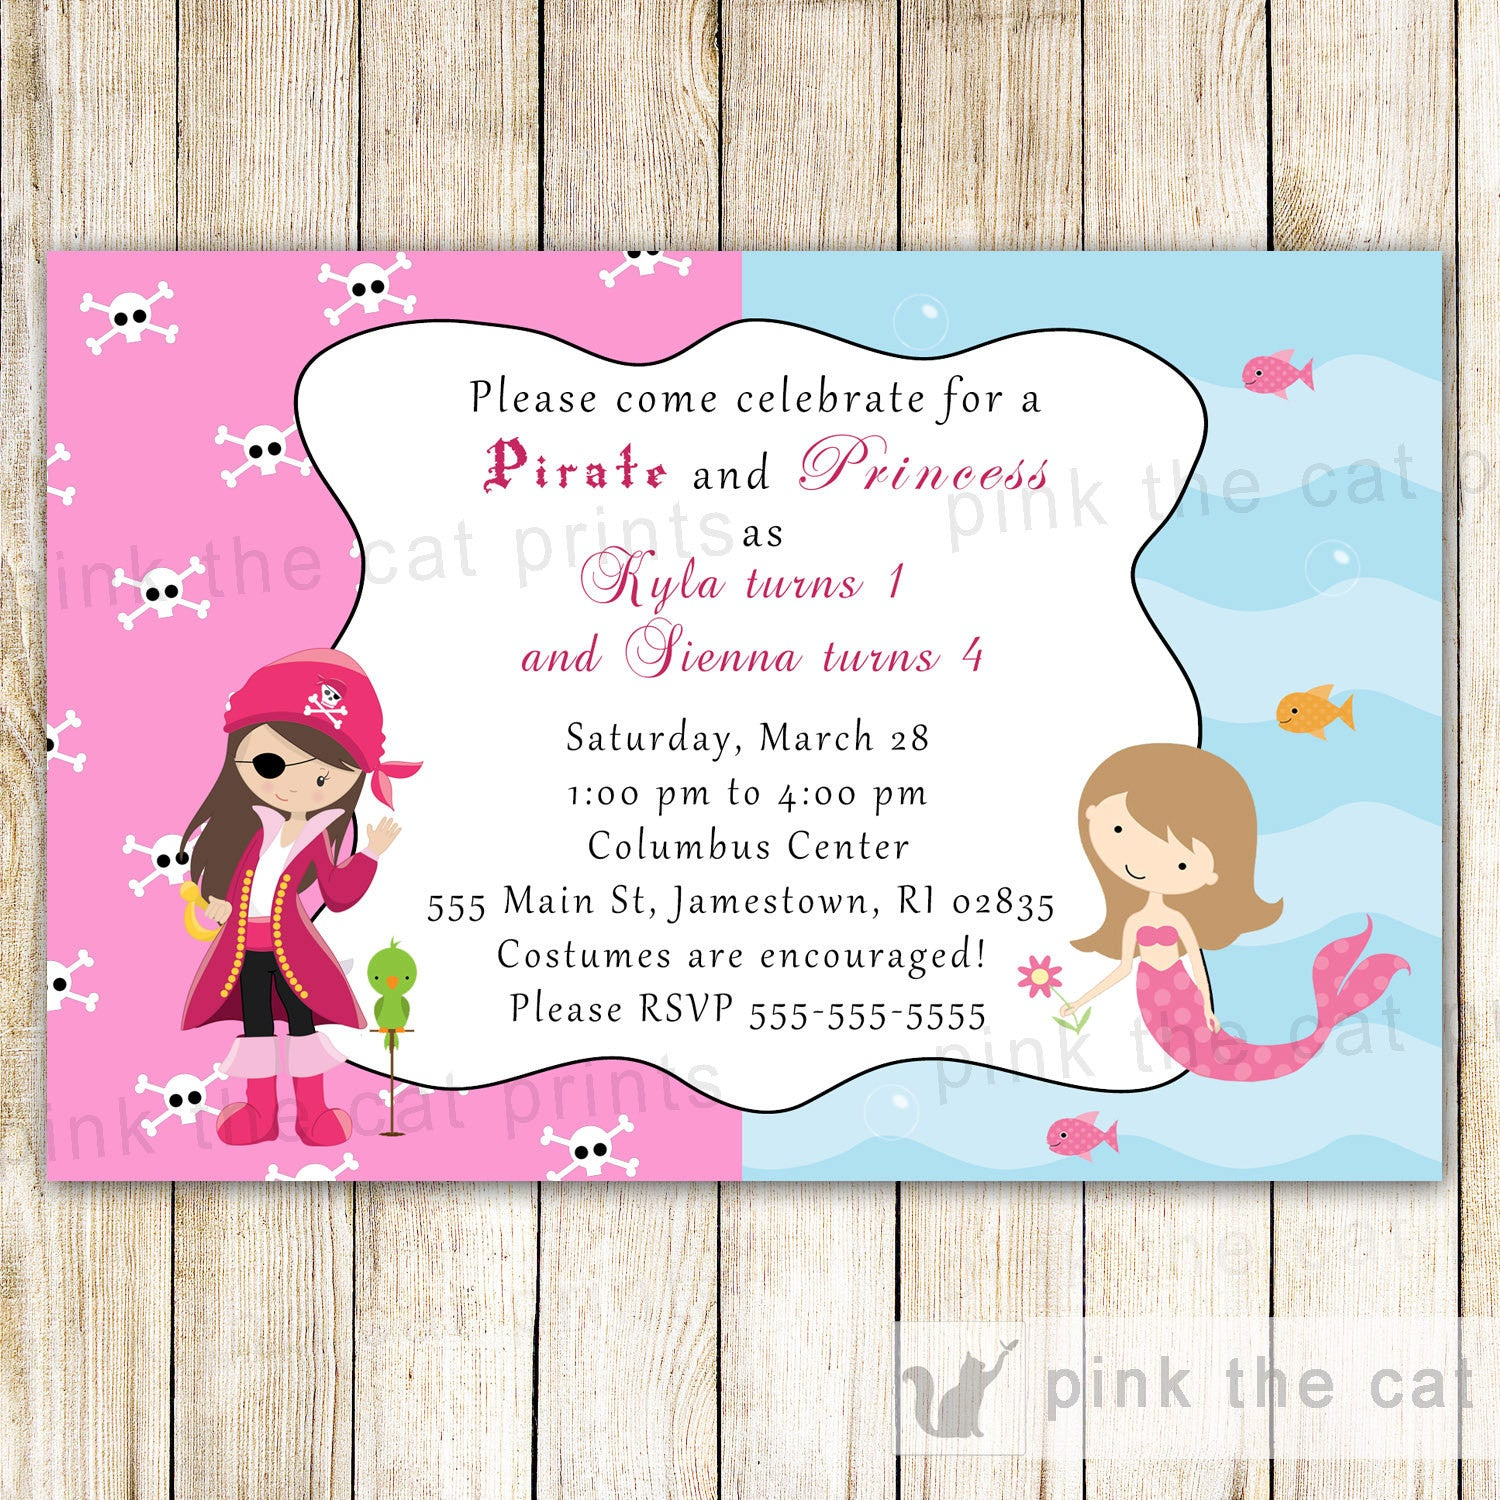 Pirate Mermaid Invitation Girl Birthday Party – Pink The Cat